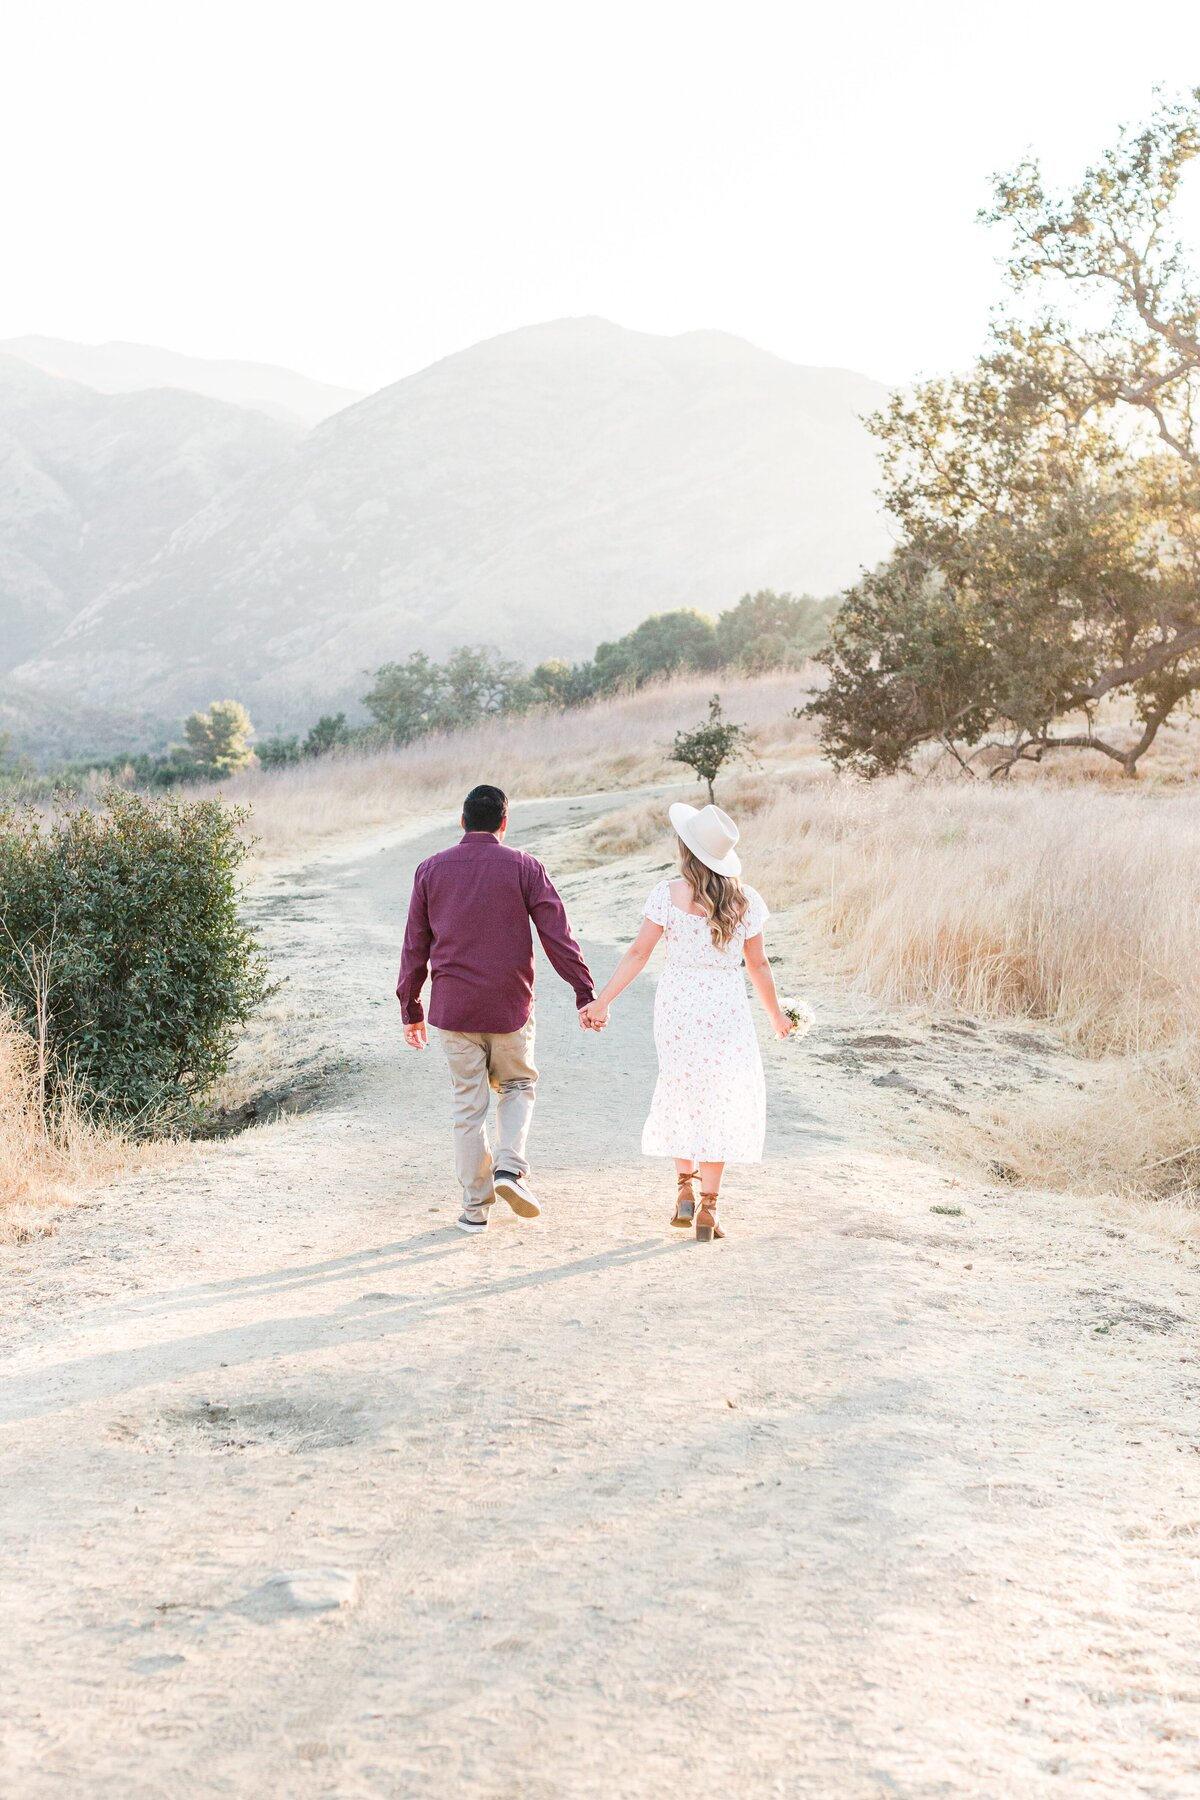 blog-Malibu-State-Creek-Park-Engagament-Shoot-boho-0042